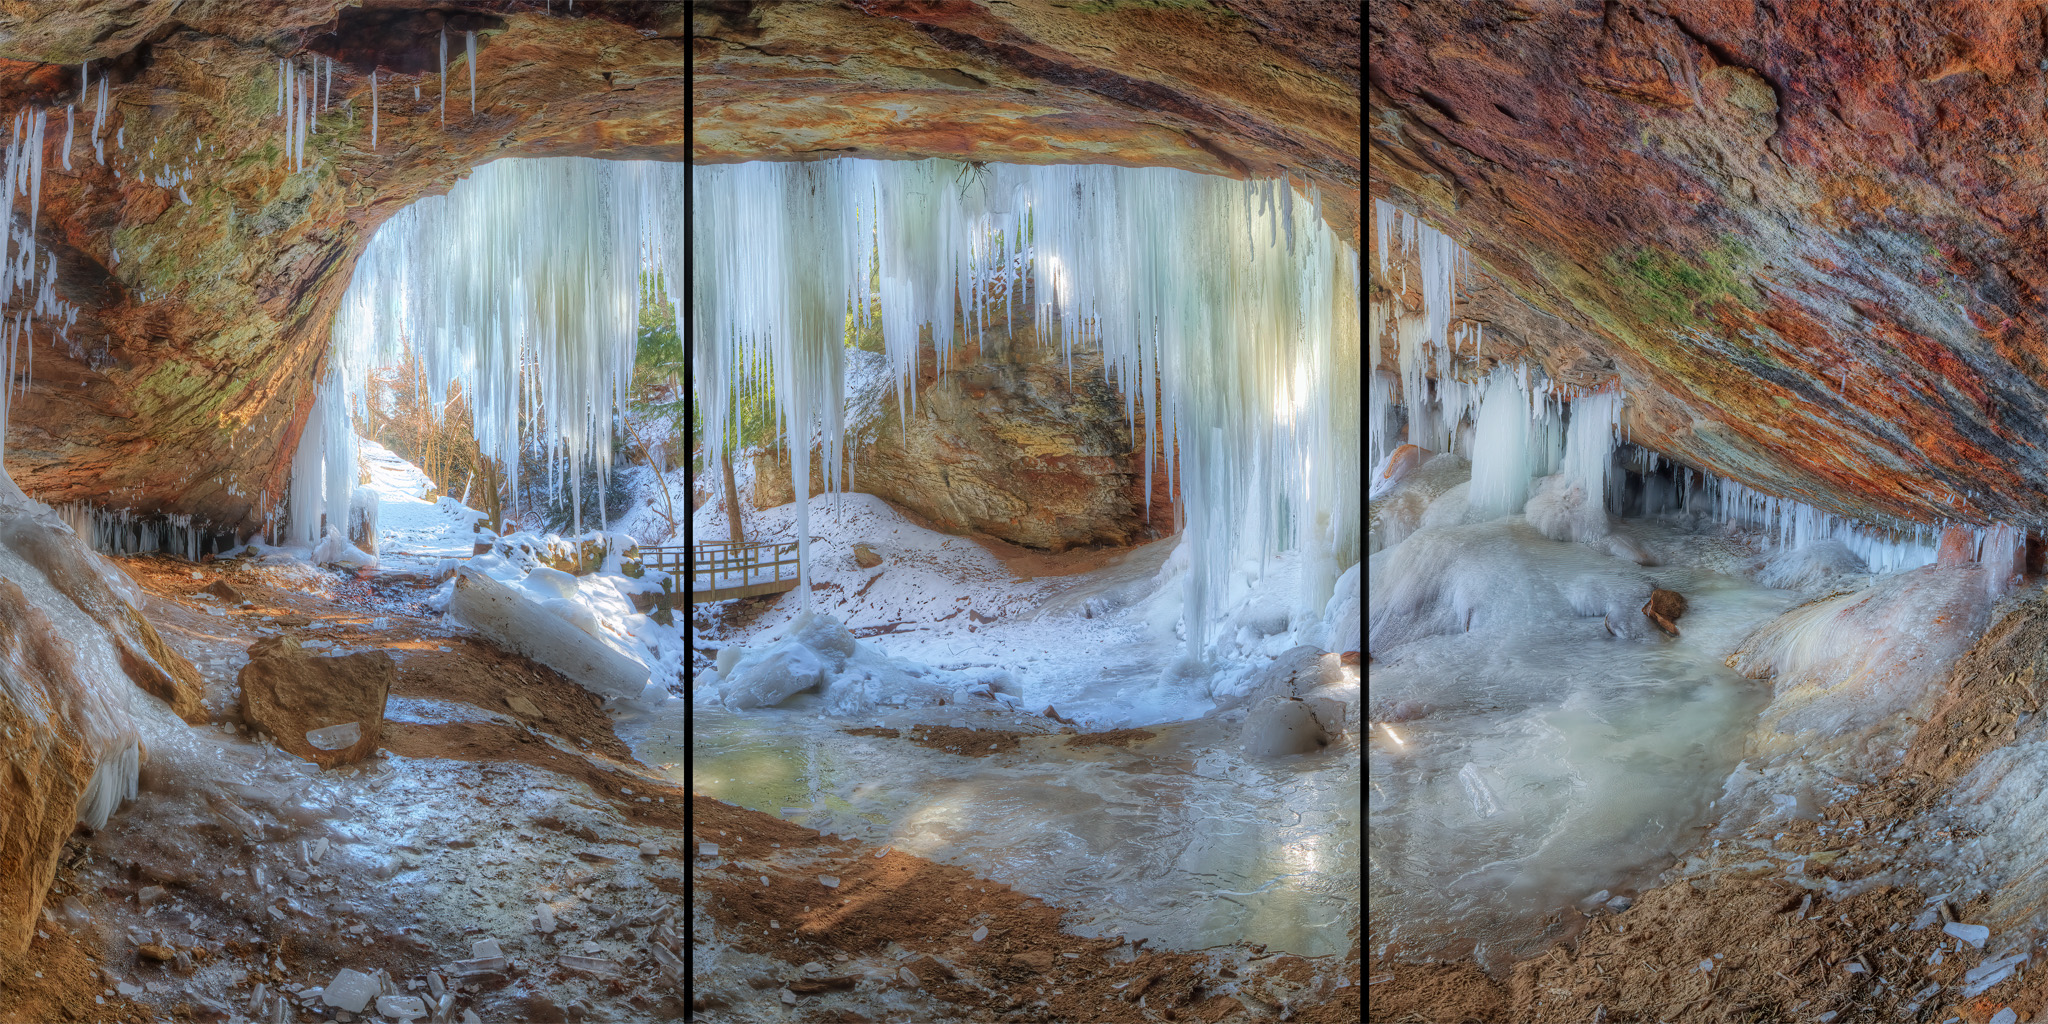 An extended frigid spell enveloped this cave. I photographed in wonderment at nature's intricate and complex beauty. The colors...